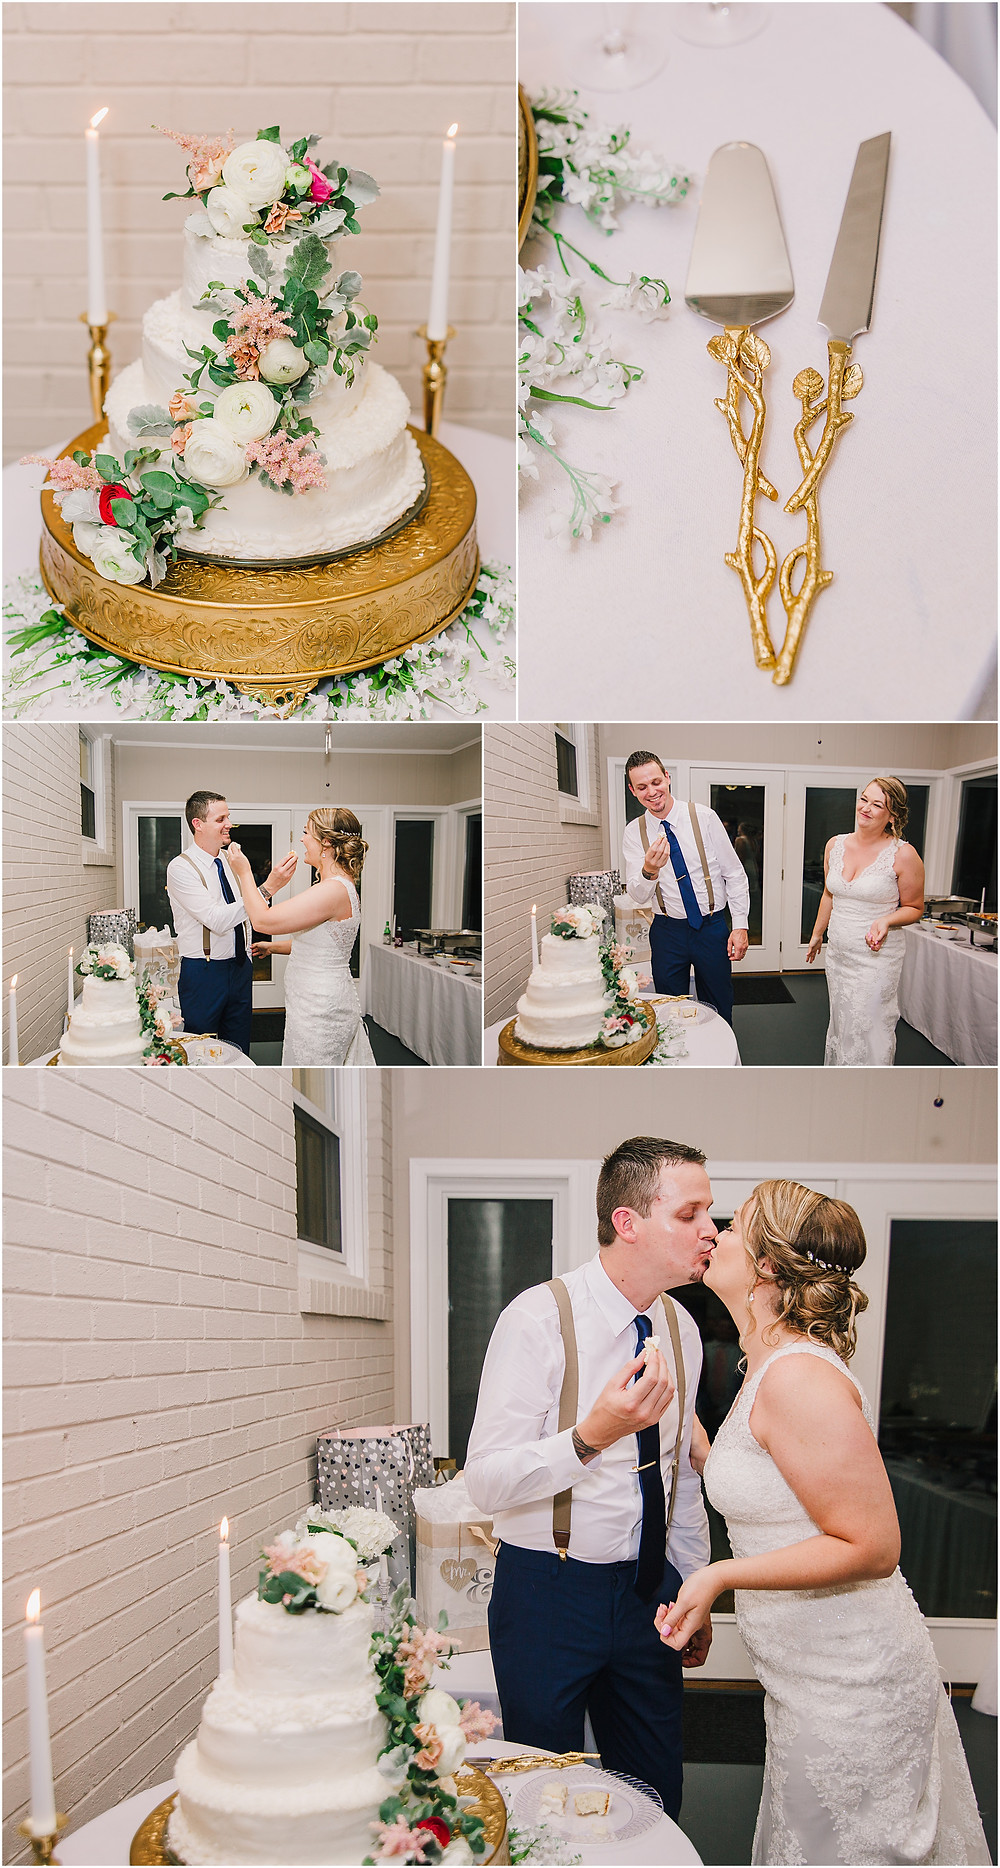 Frederick Maryland Wedding - Frederick Wedding Photographer - Katherine Elizabeth Photography